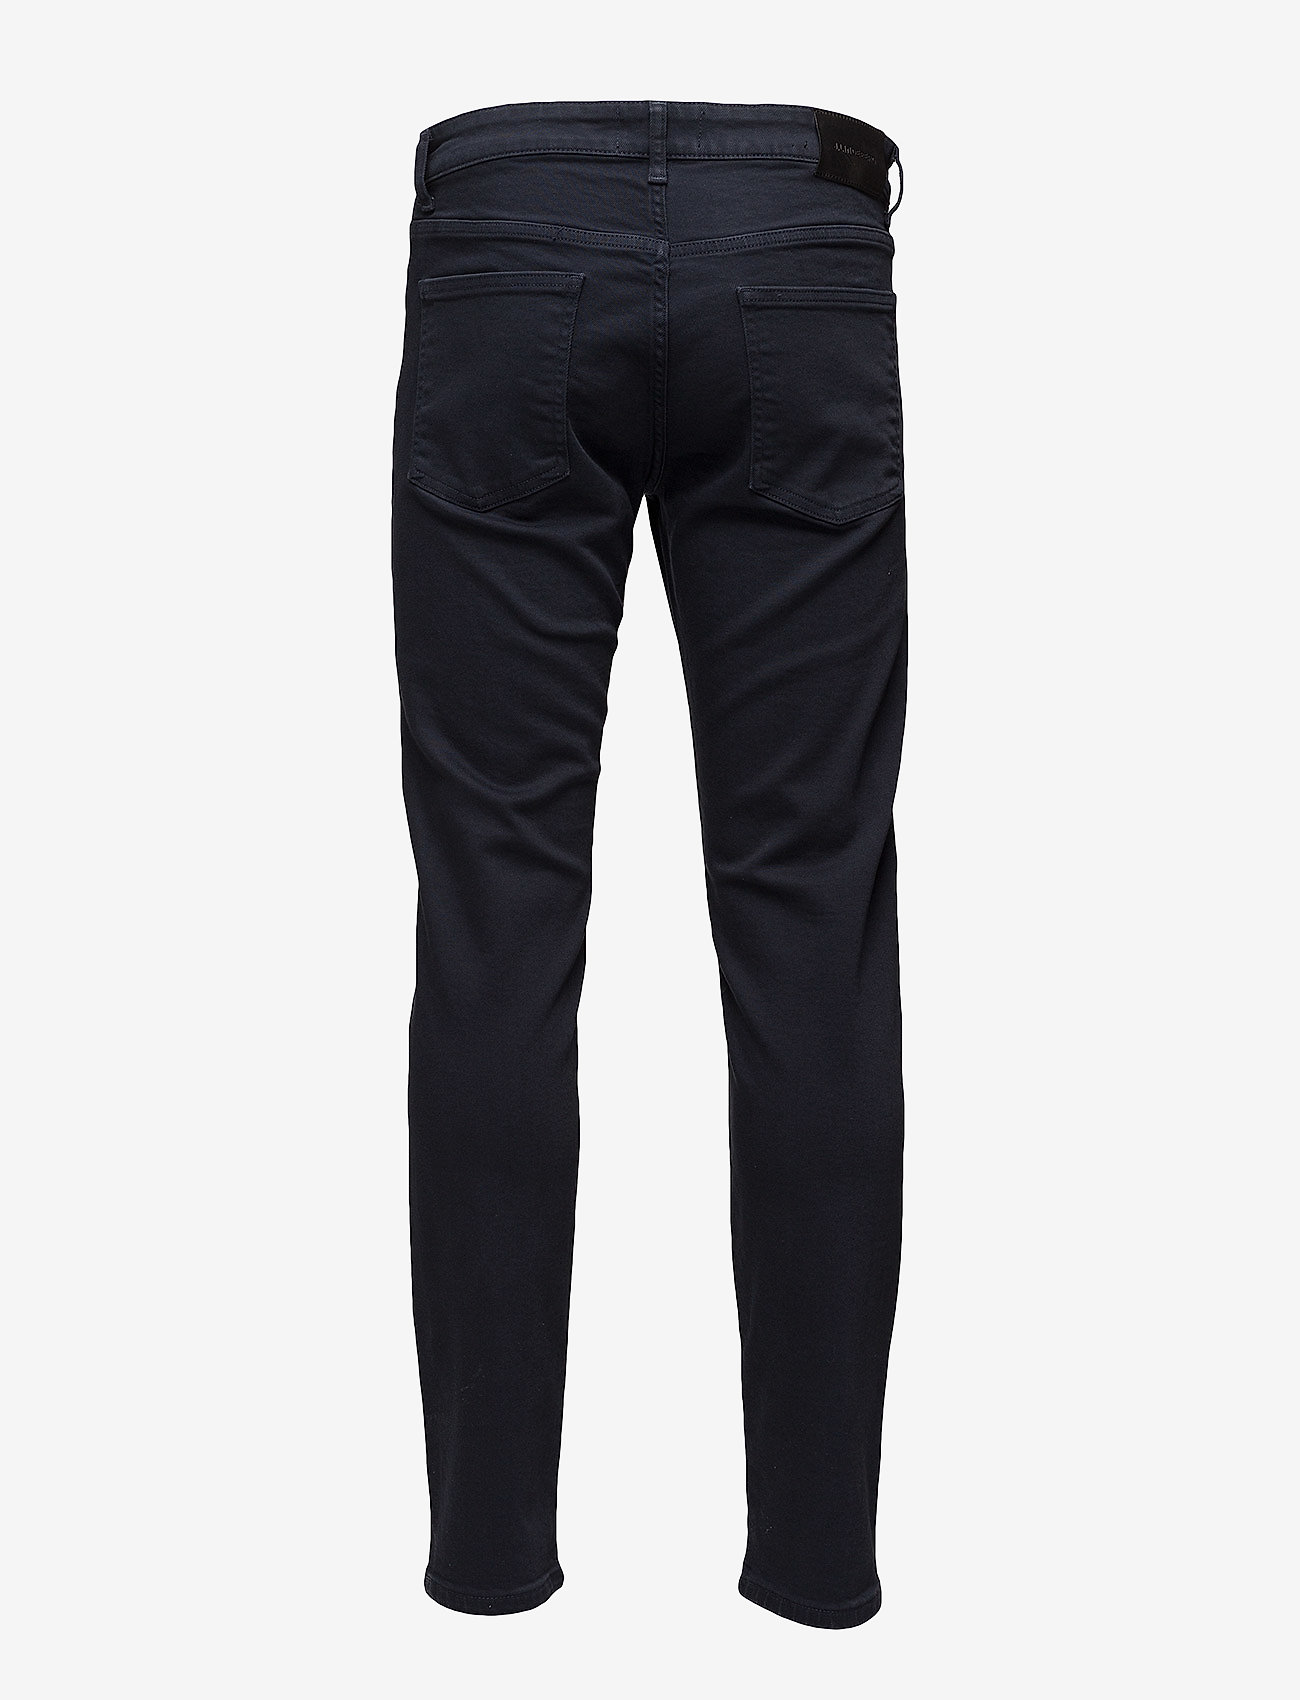 J. Lindeberg - Jay Solid Stretch - slim jeans - jl navy - 1